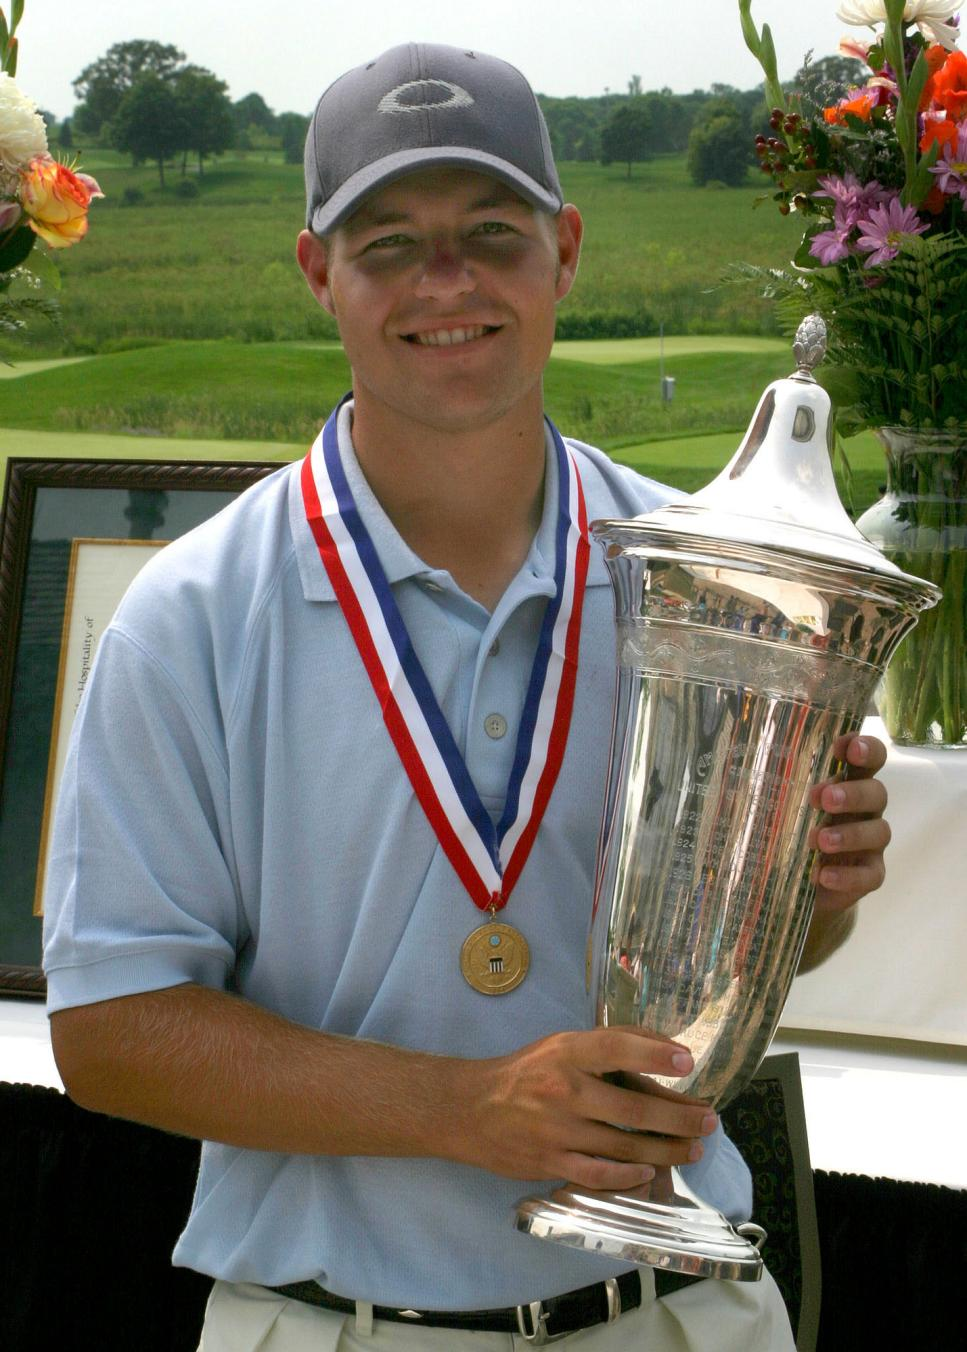 ryan-moore-public-links-2004-trophy.jpg